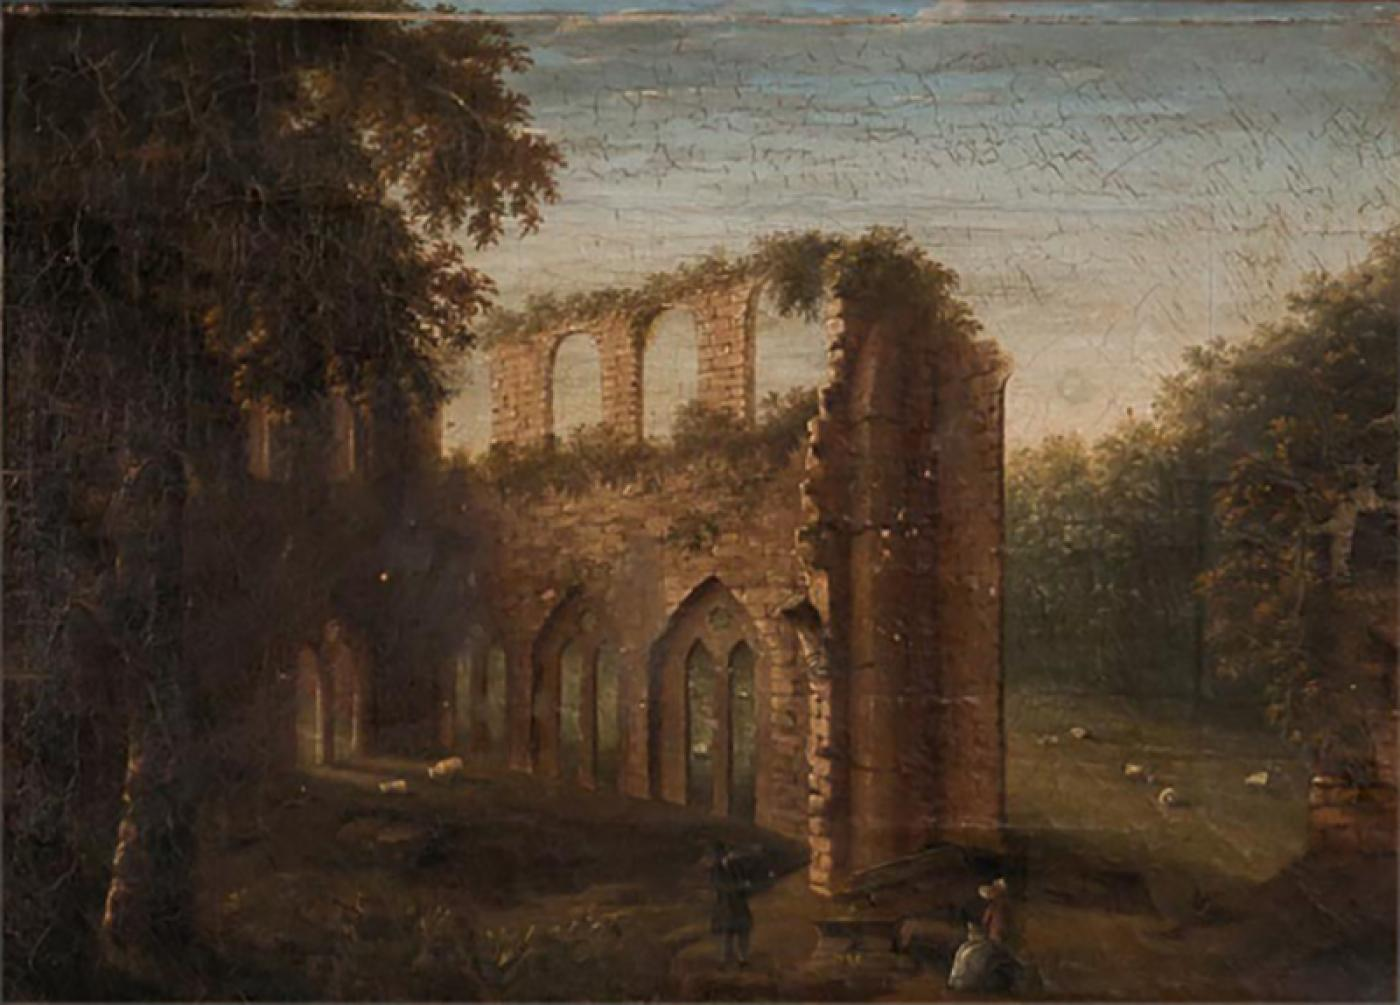 Antique 19th Century Original English Oil Painting Landscape Of Abbey Ruins